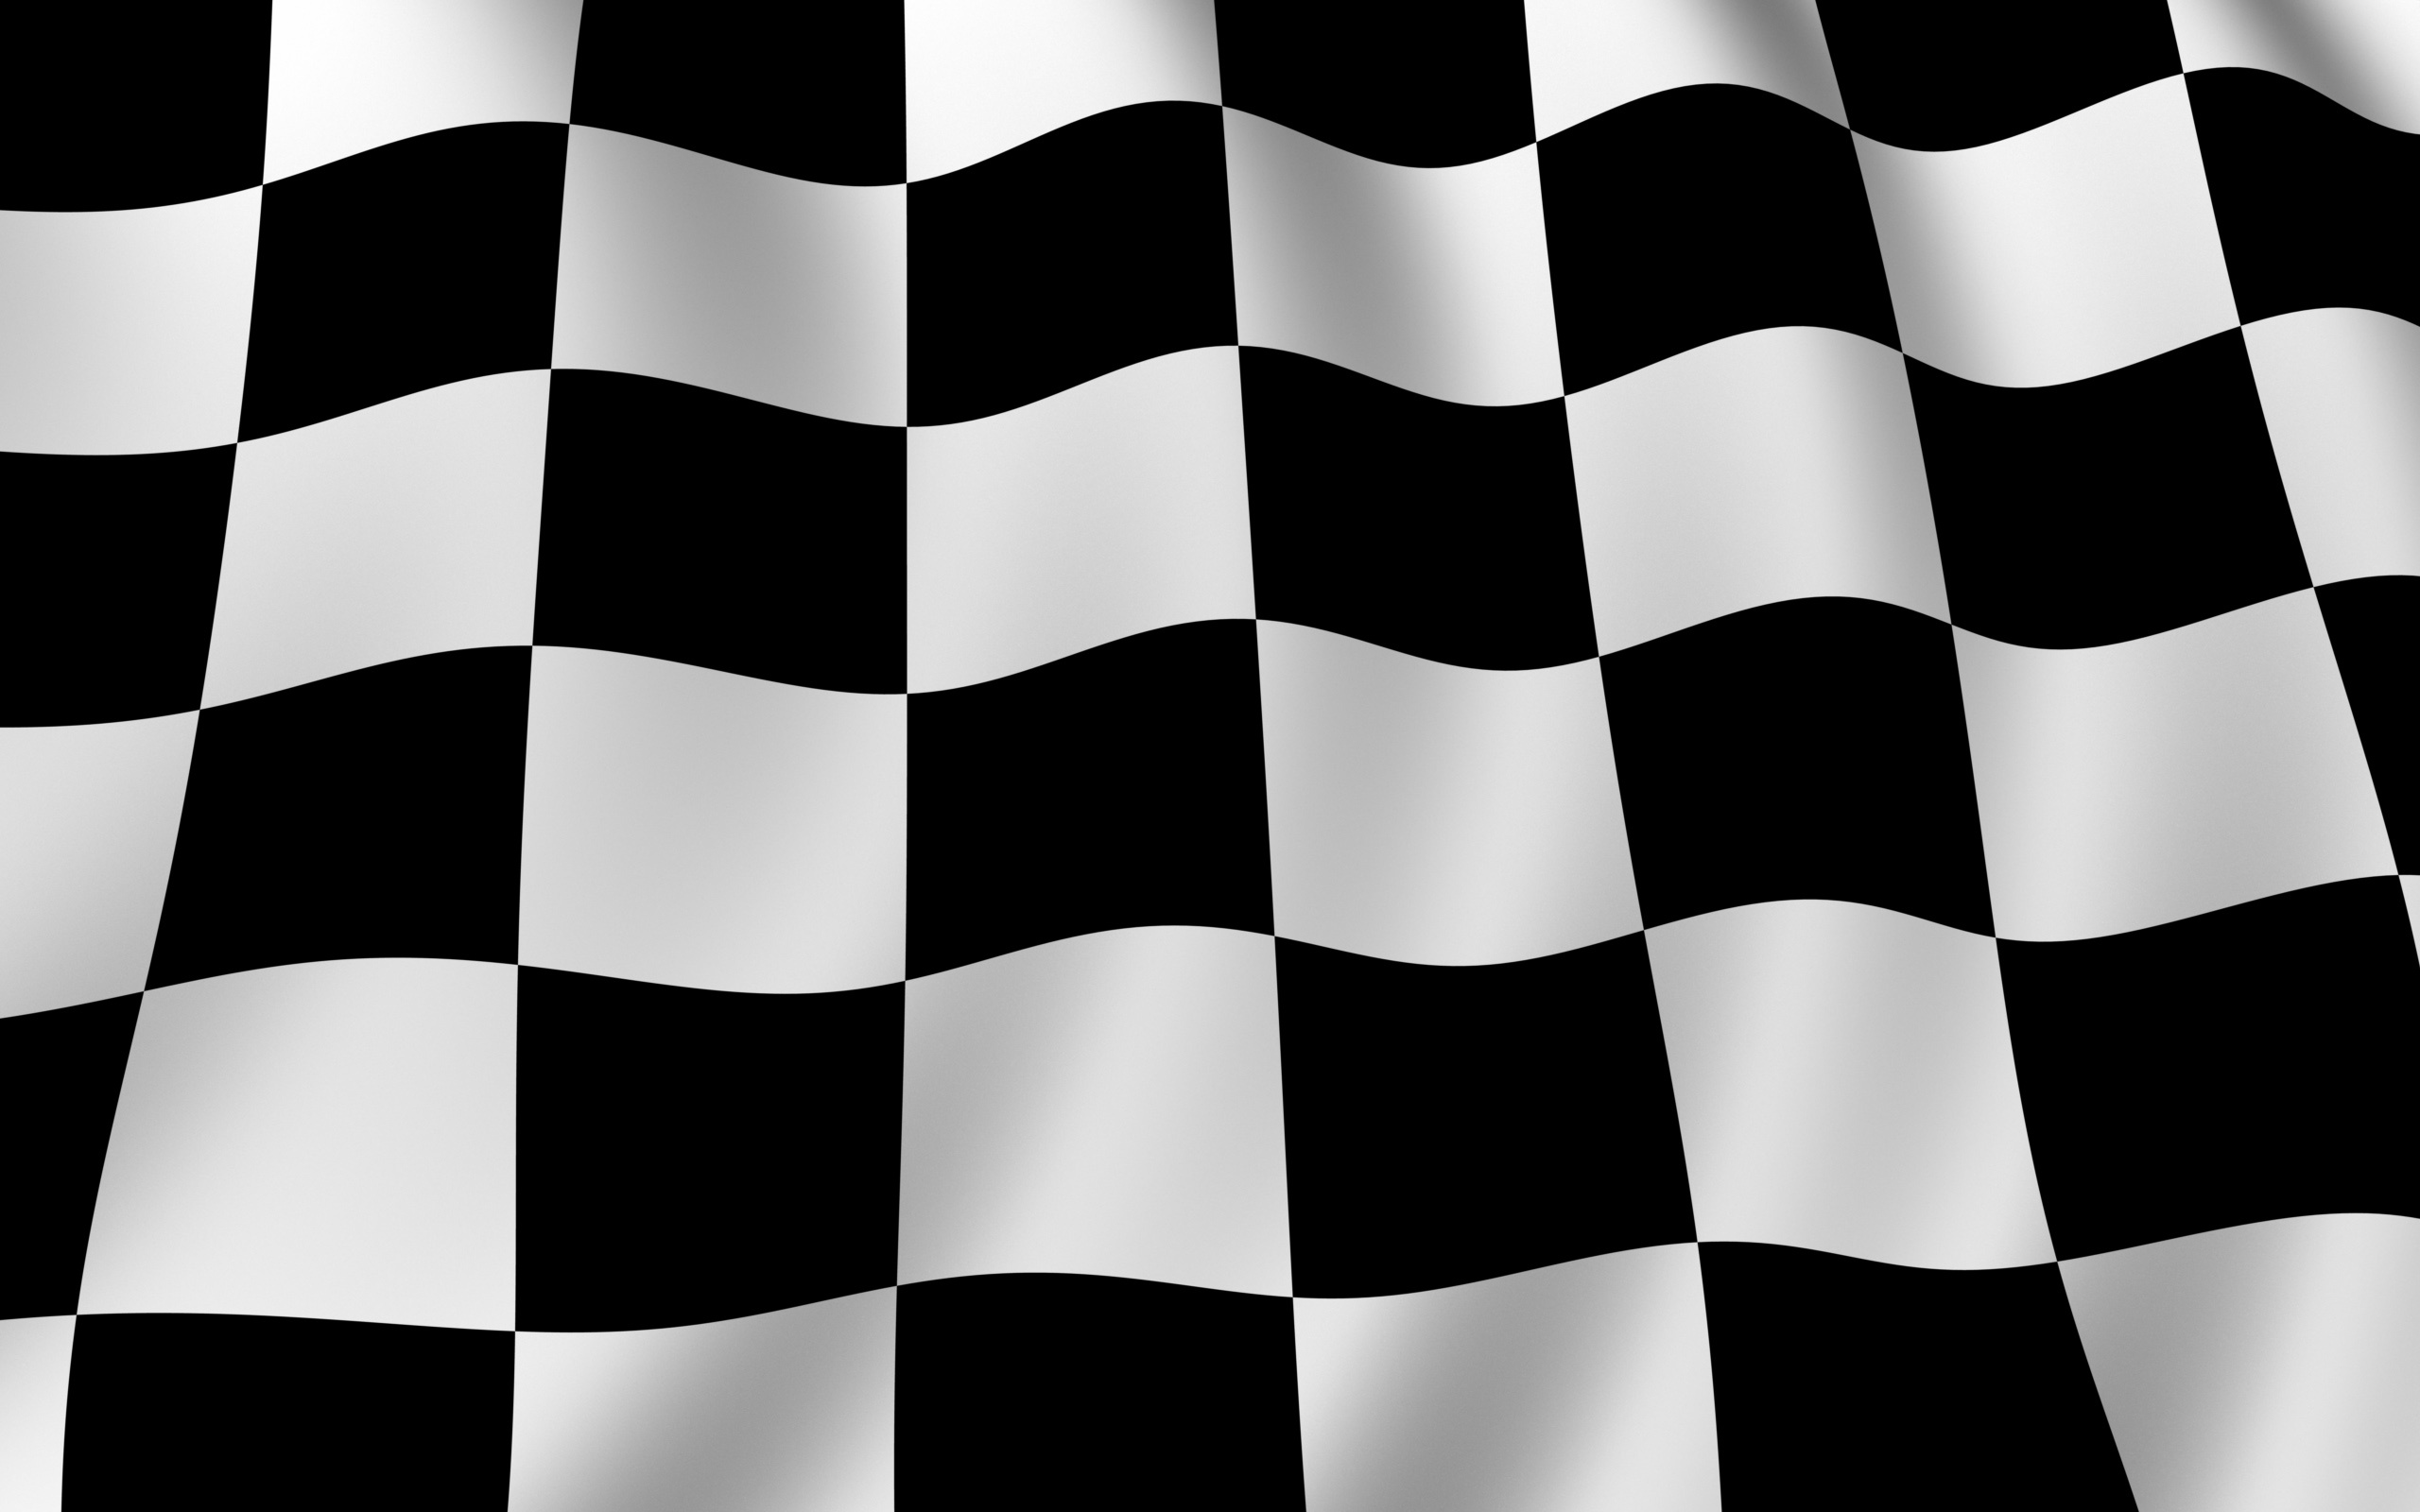 Checkered flag HD Wallpaper Background Image 2560x1600 ID 2560x1600